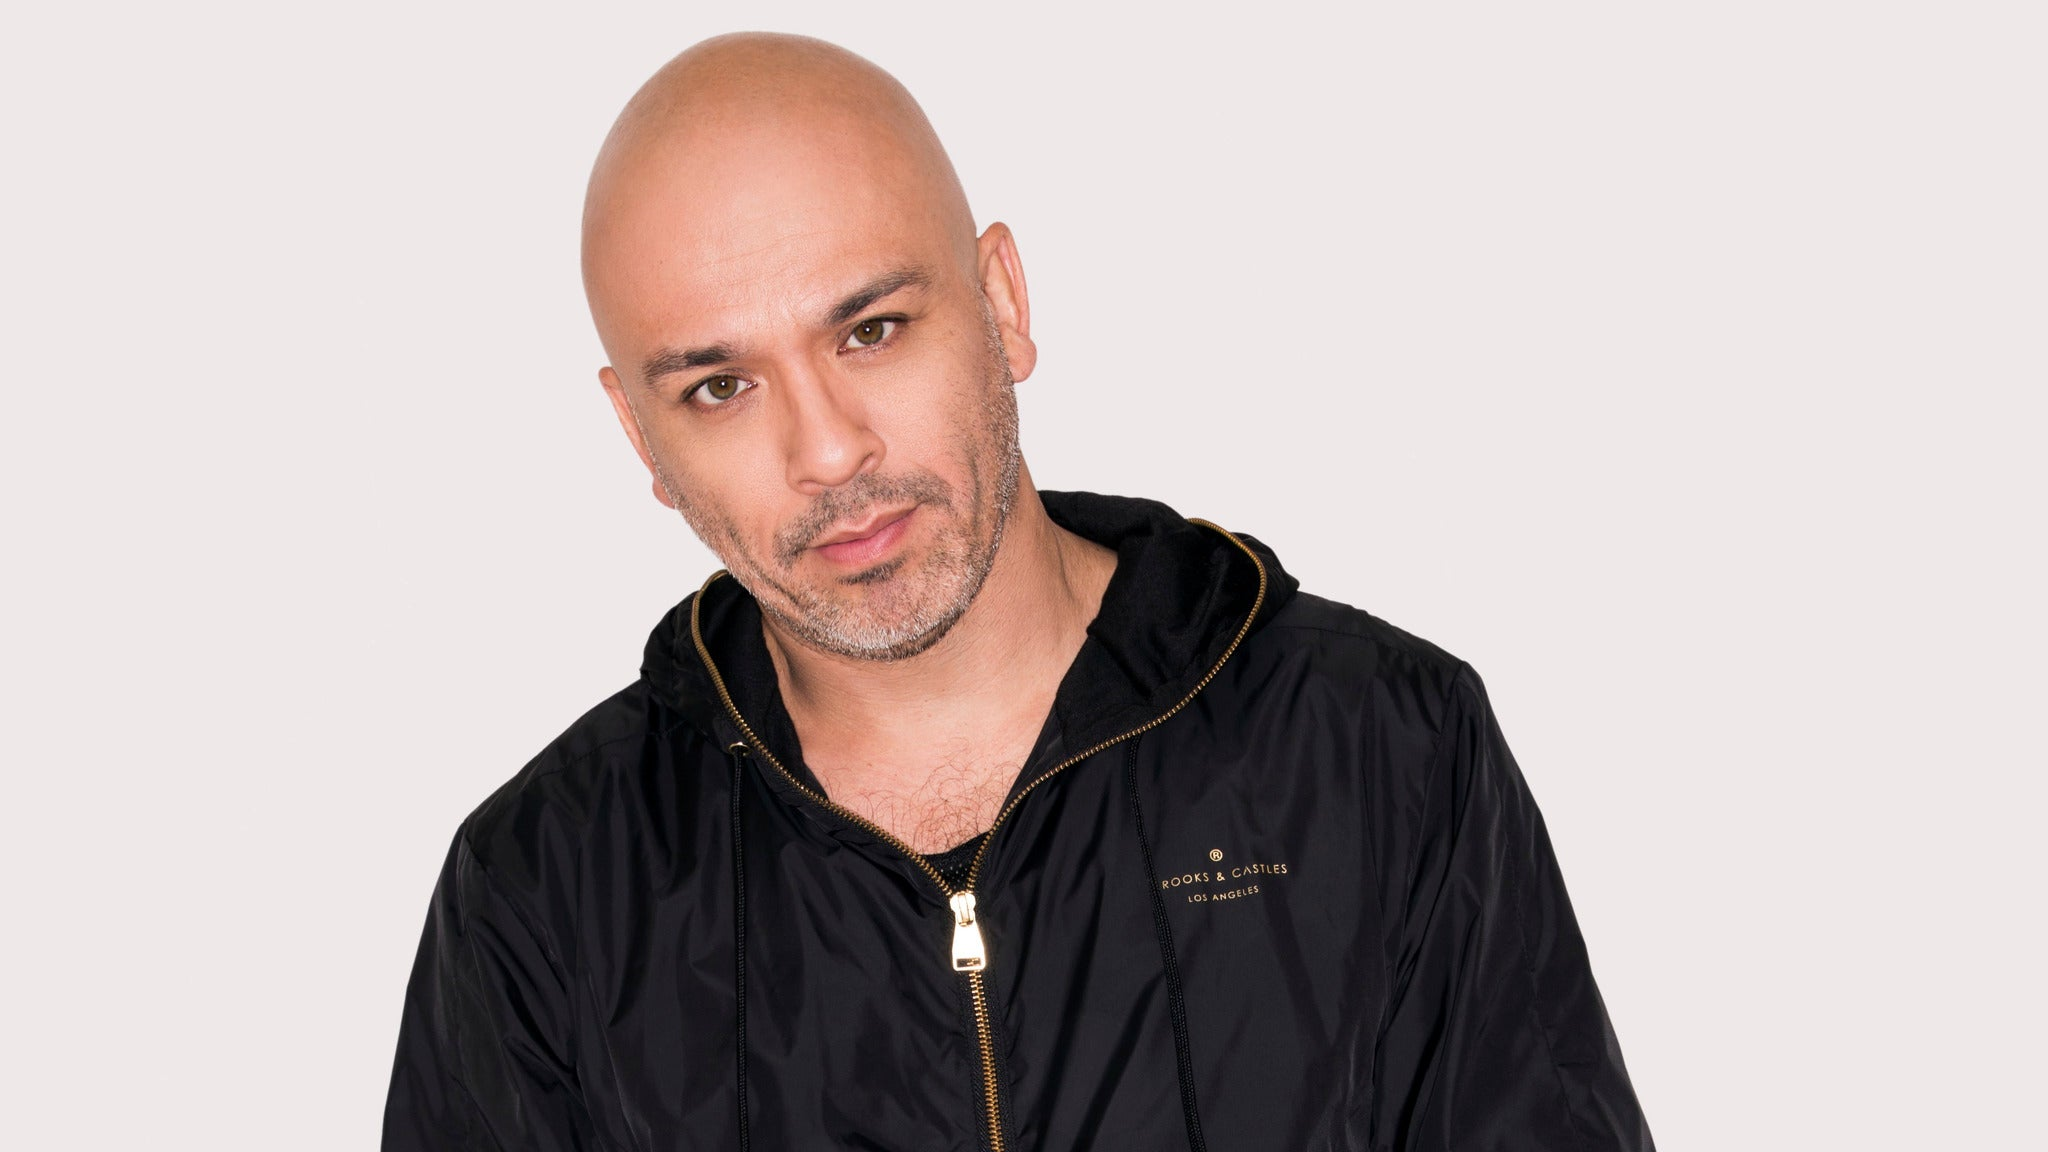 SORRY, THIS EVENT IS NO LONGER ACTIVE<br>Jo Koy at Brea Improv - Brea, CA 92821